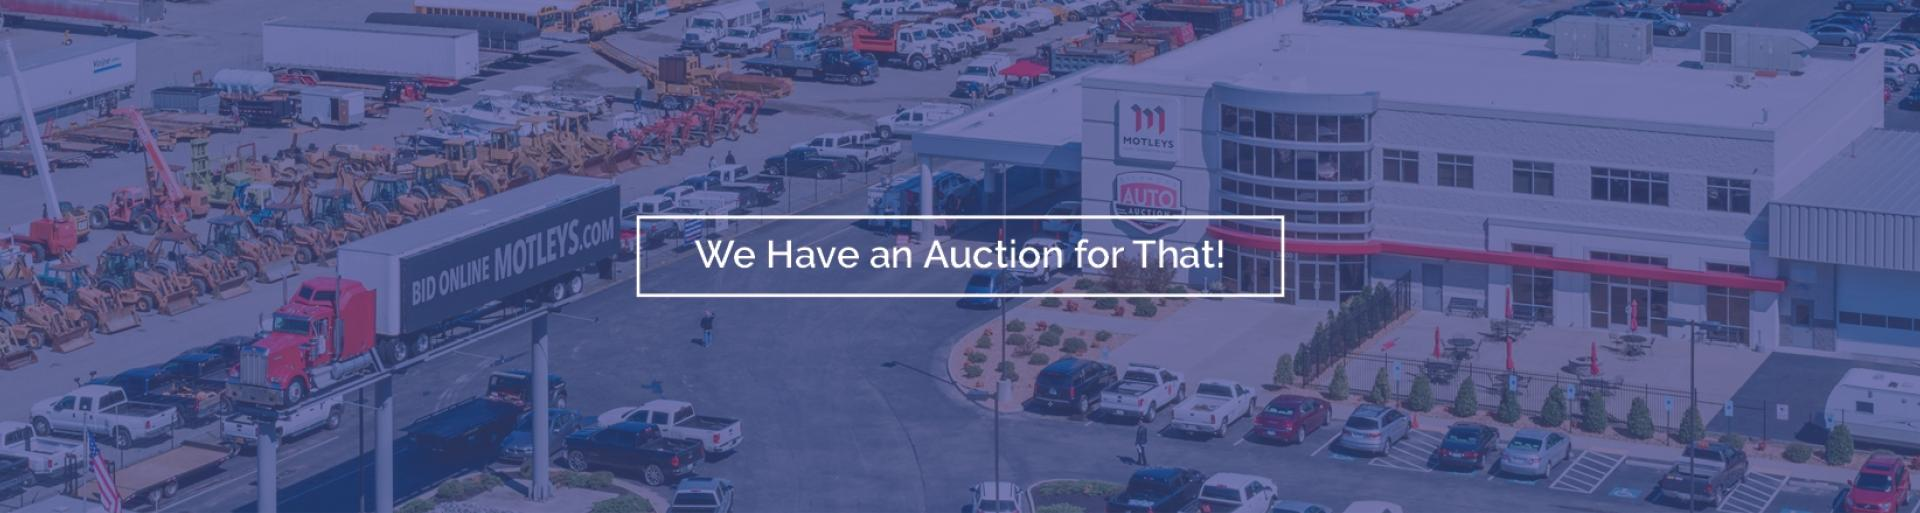 We have an auction slider